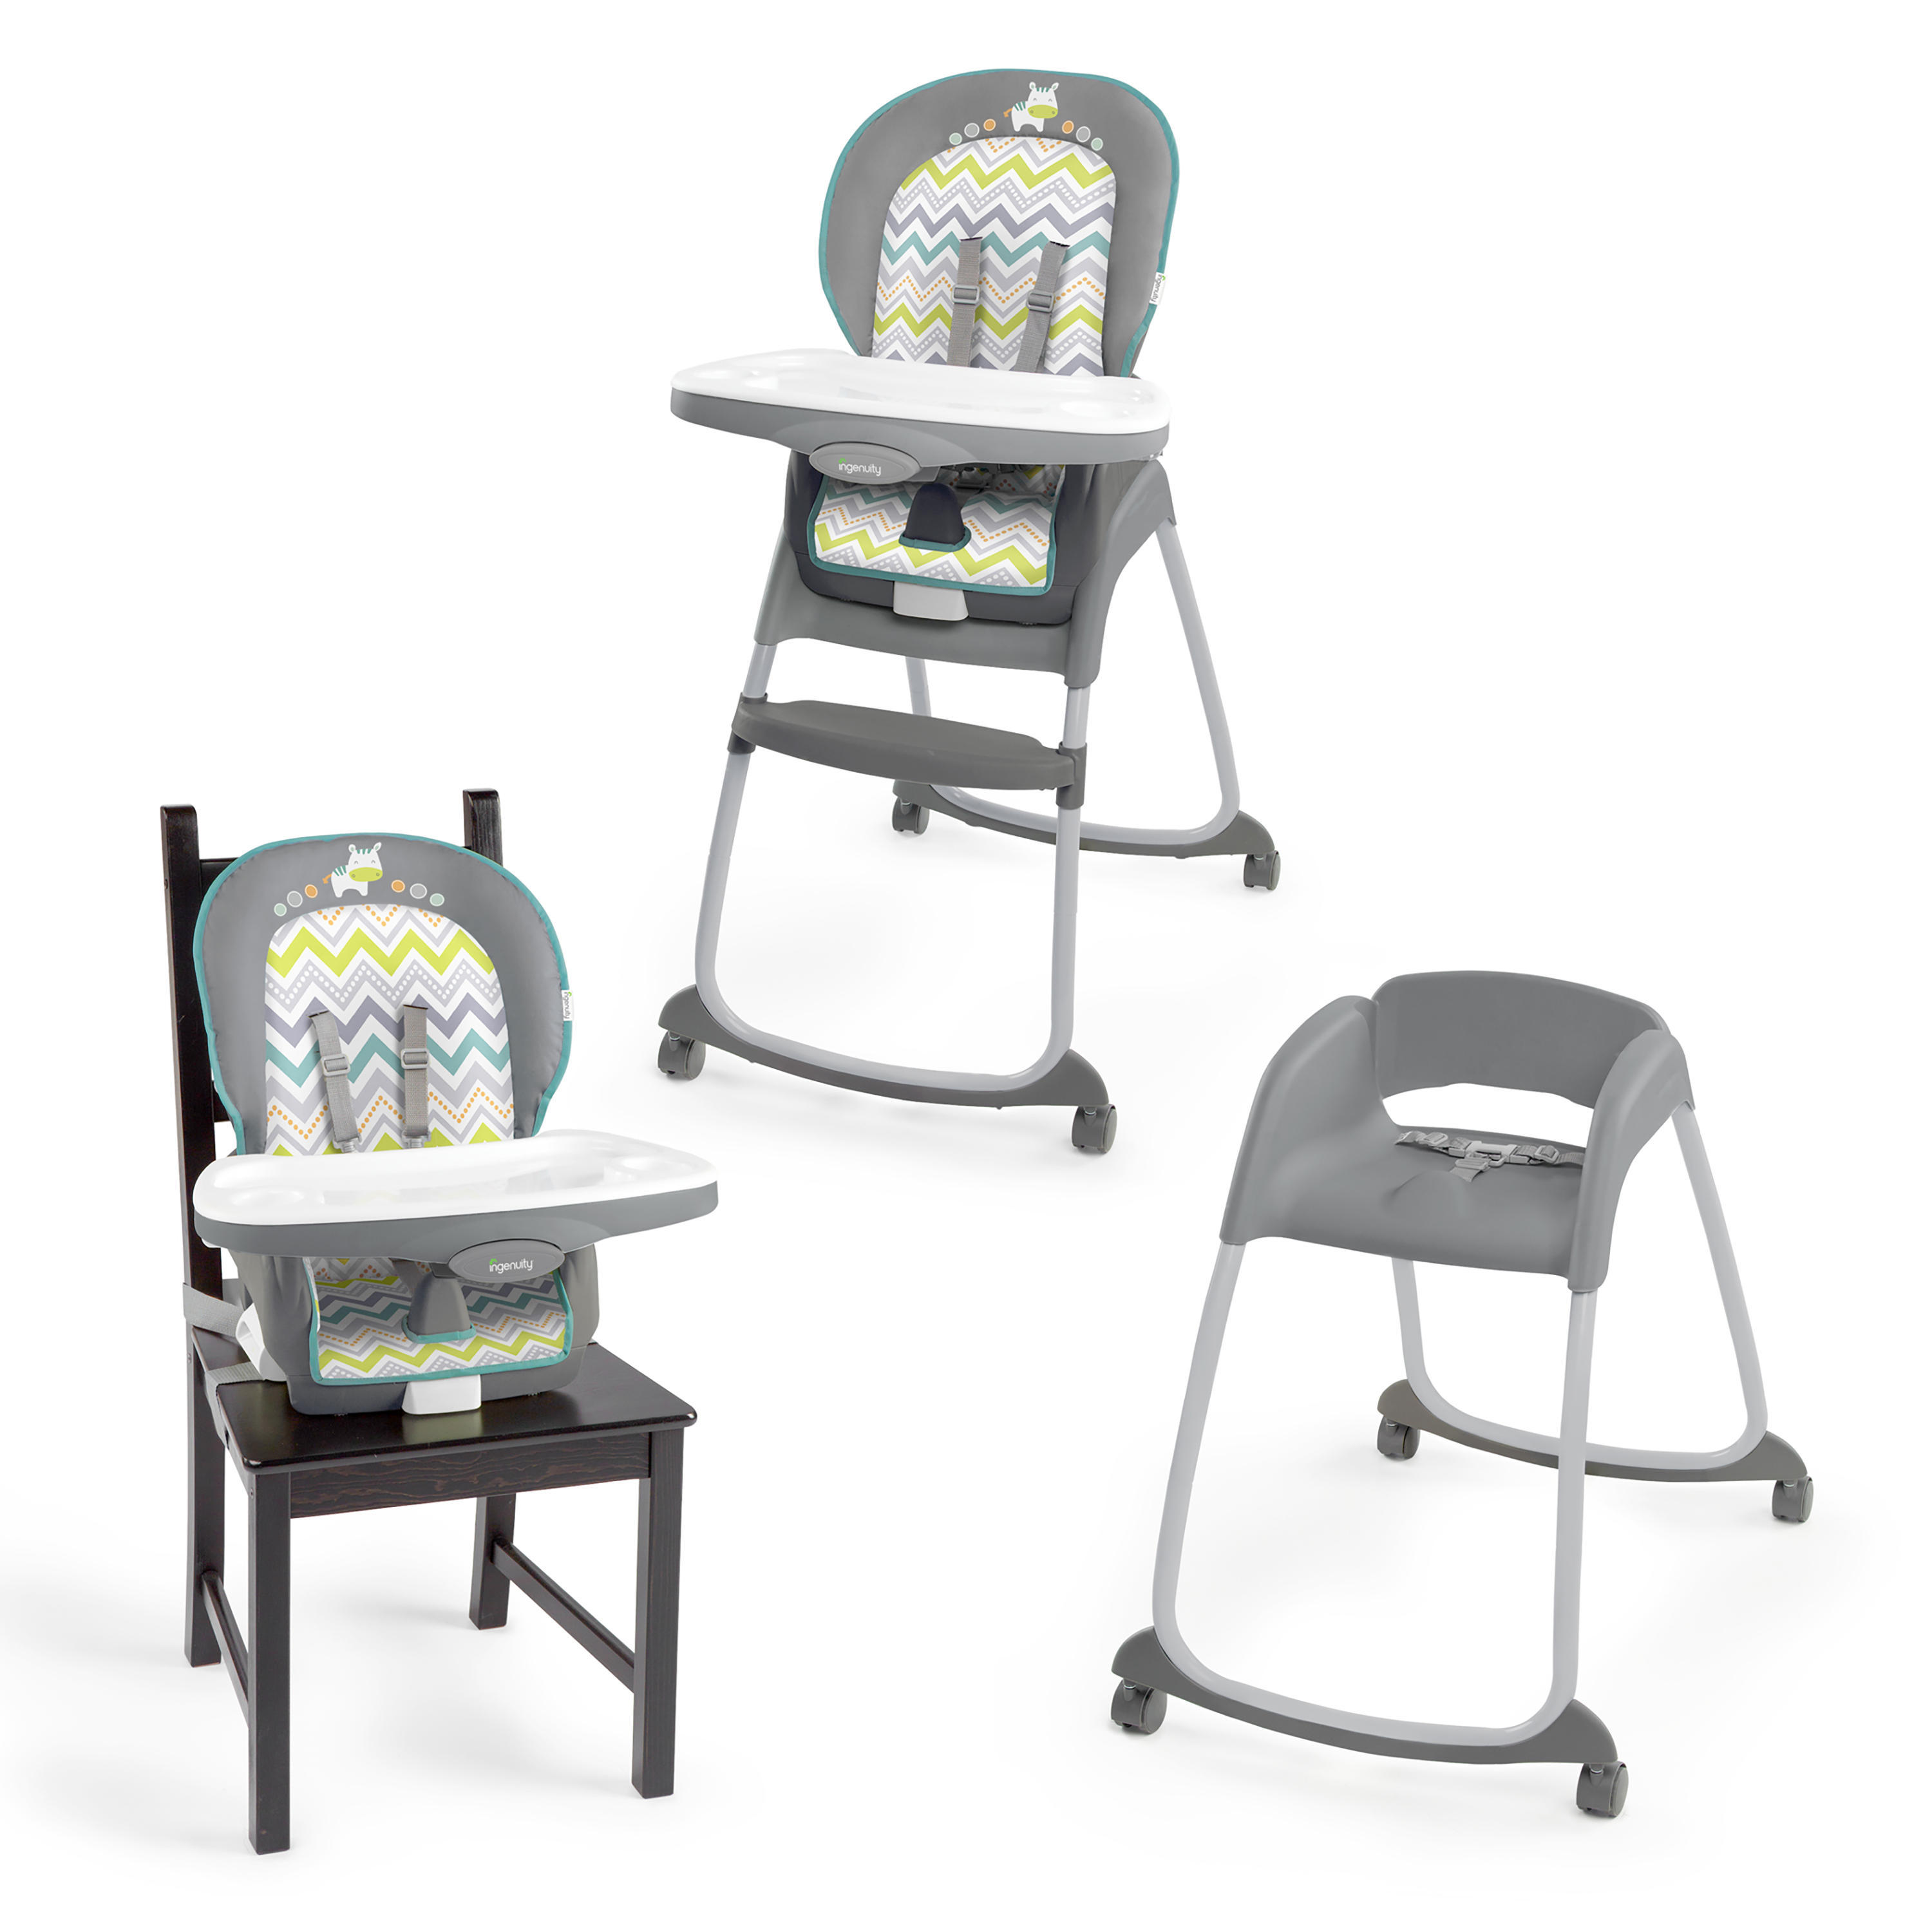 Kids Furniture,Walmart.com